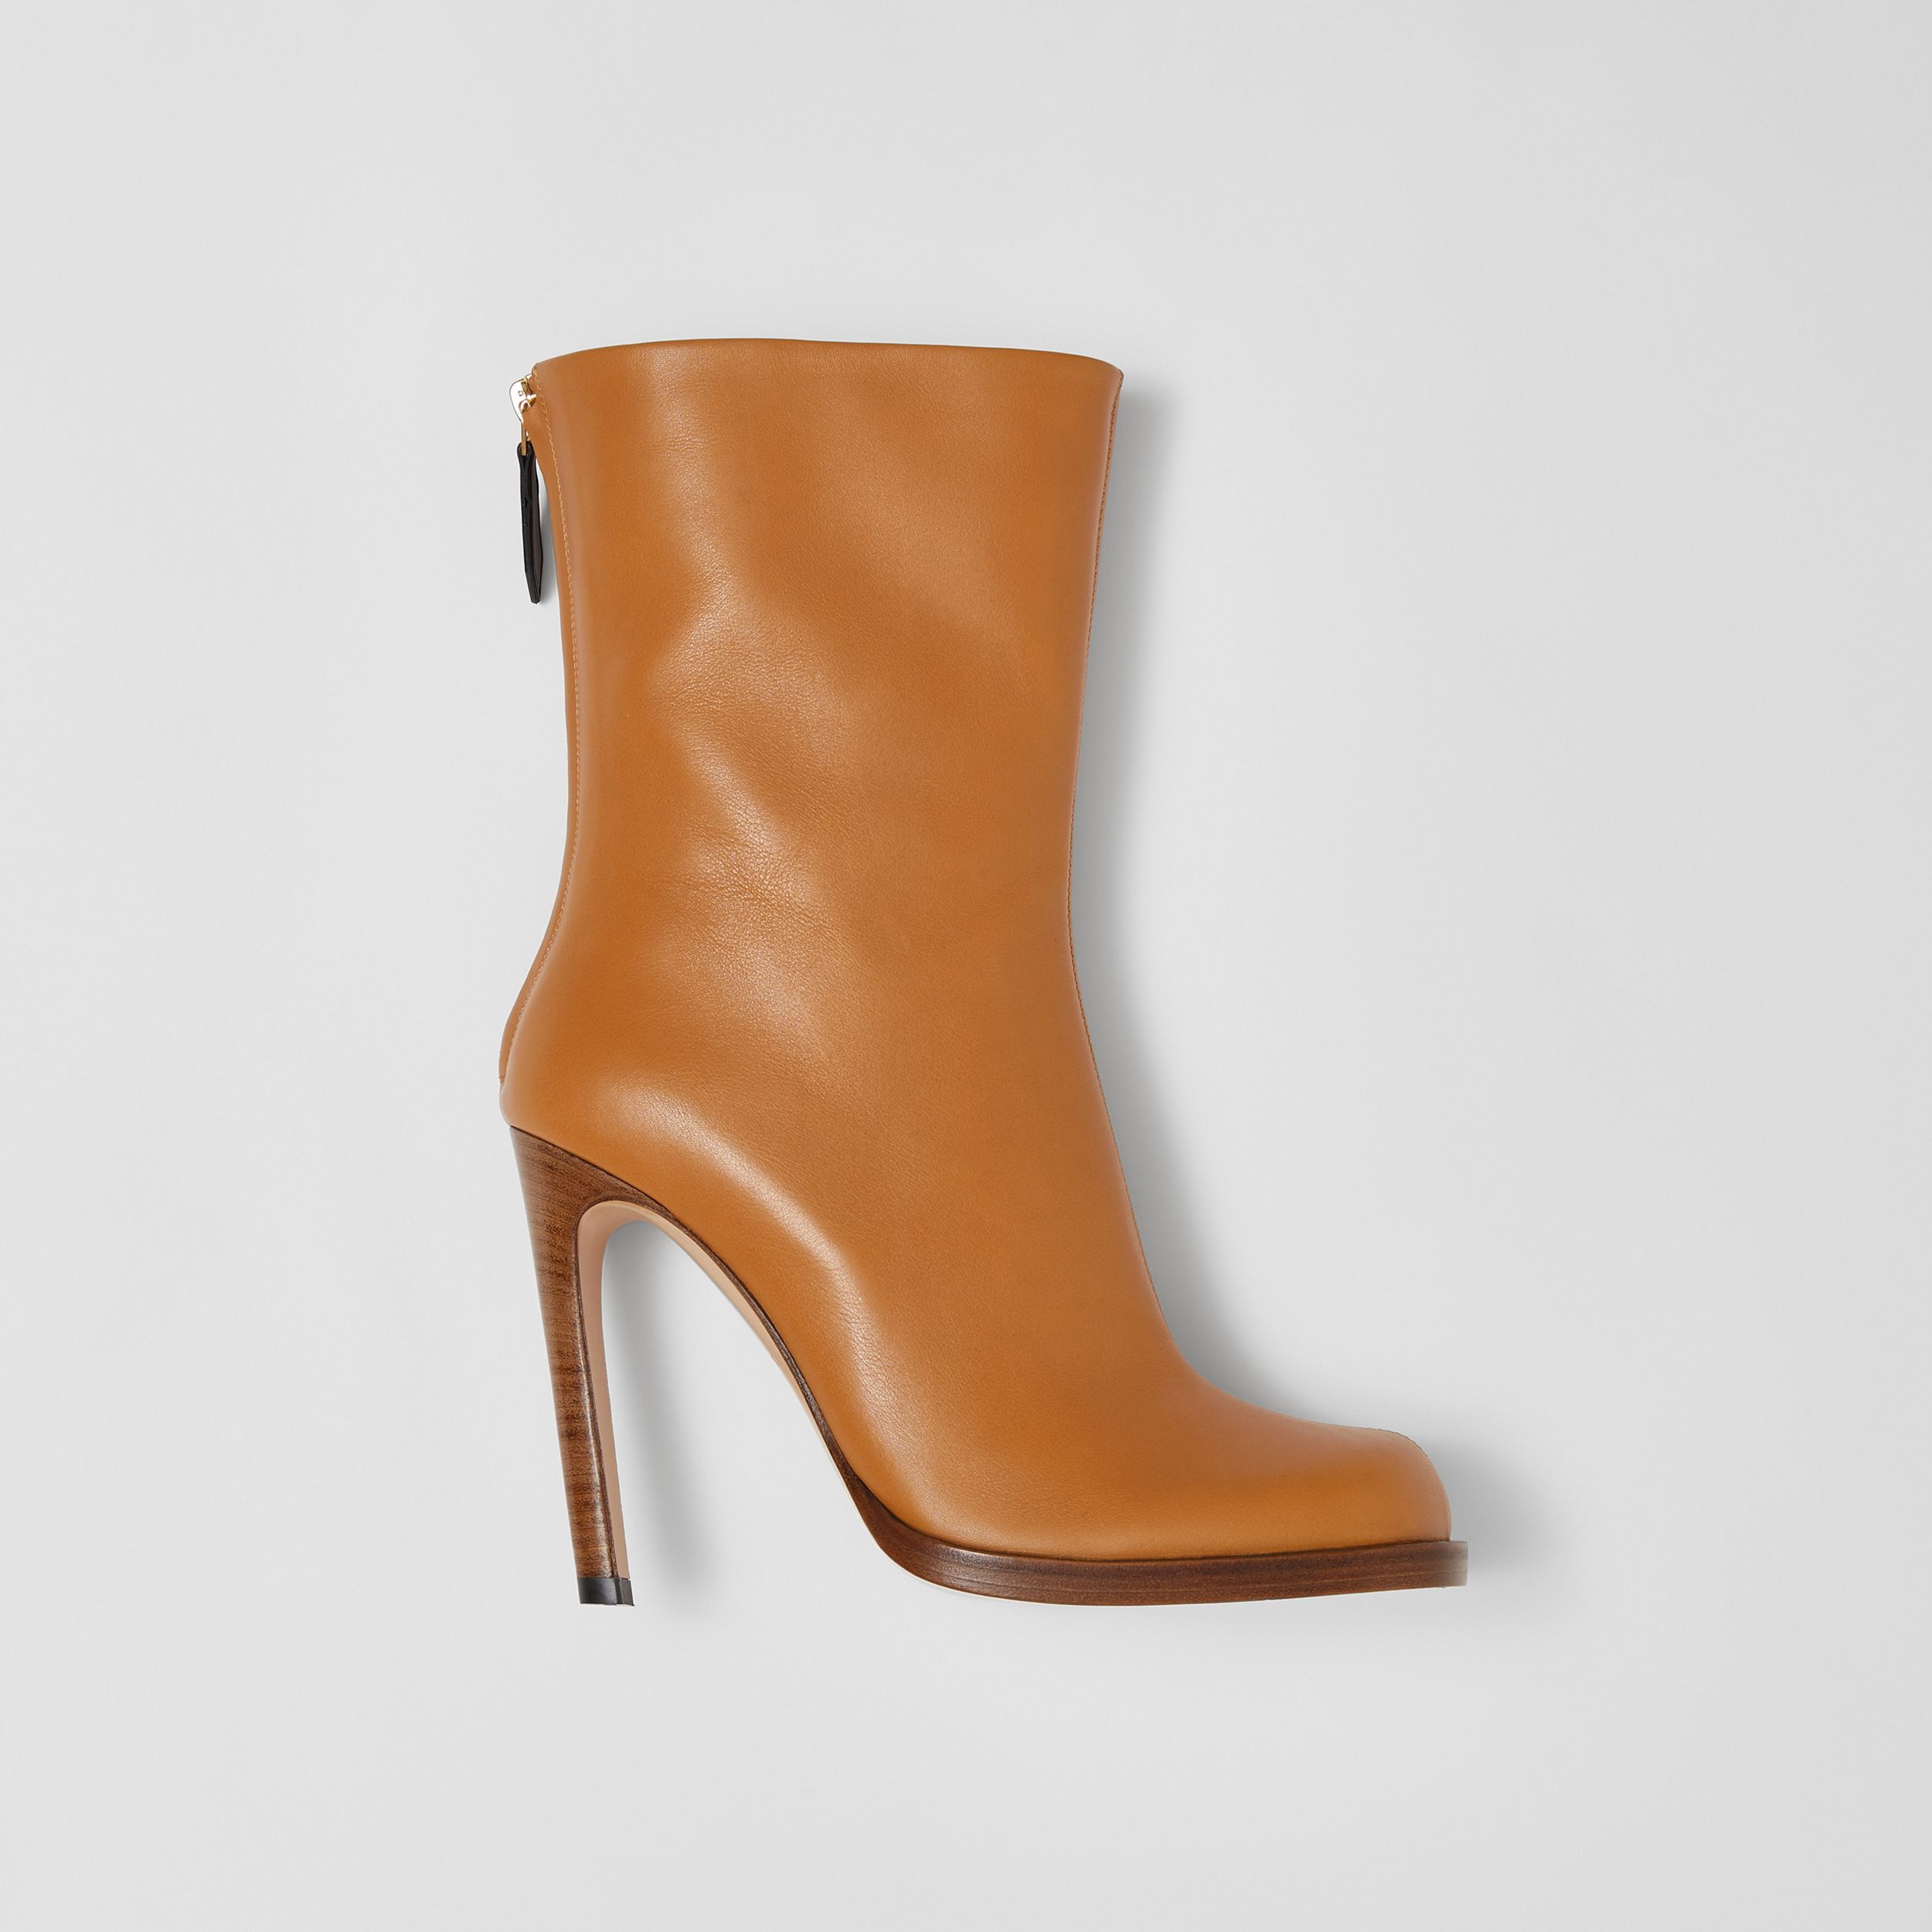 Vintage Check-lined Leather Ankle Boots in Ochre - Women | Burberry - 2